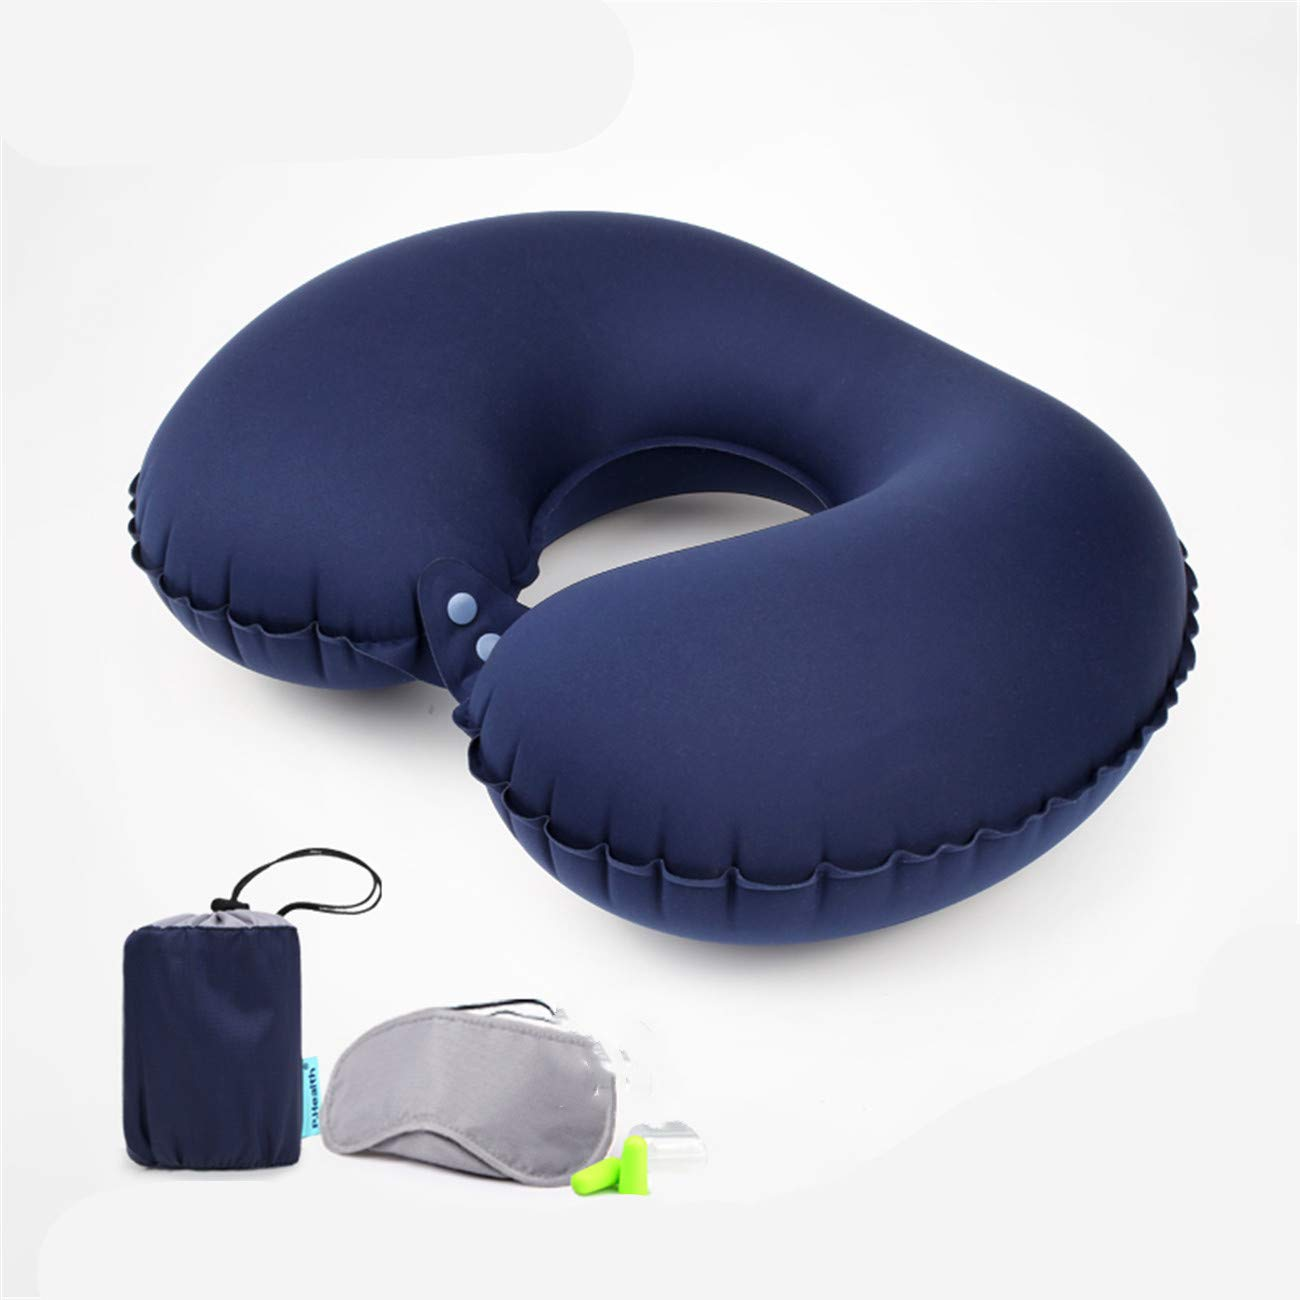 U-Shaped Pillow Travel Portable Pillow Inflatable U-Shaped Pillow Aircraft high-Speed Rail Motor Equipment Compact and Easy to accommodate by Shwk